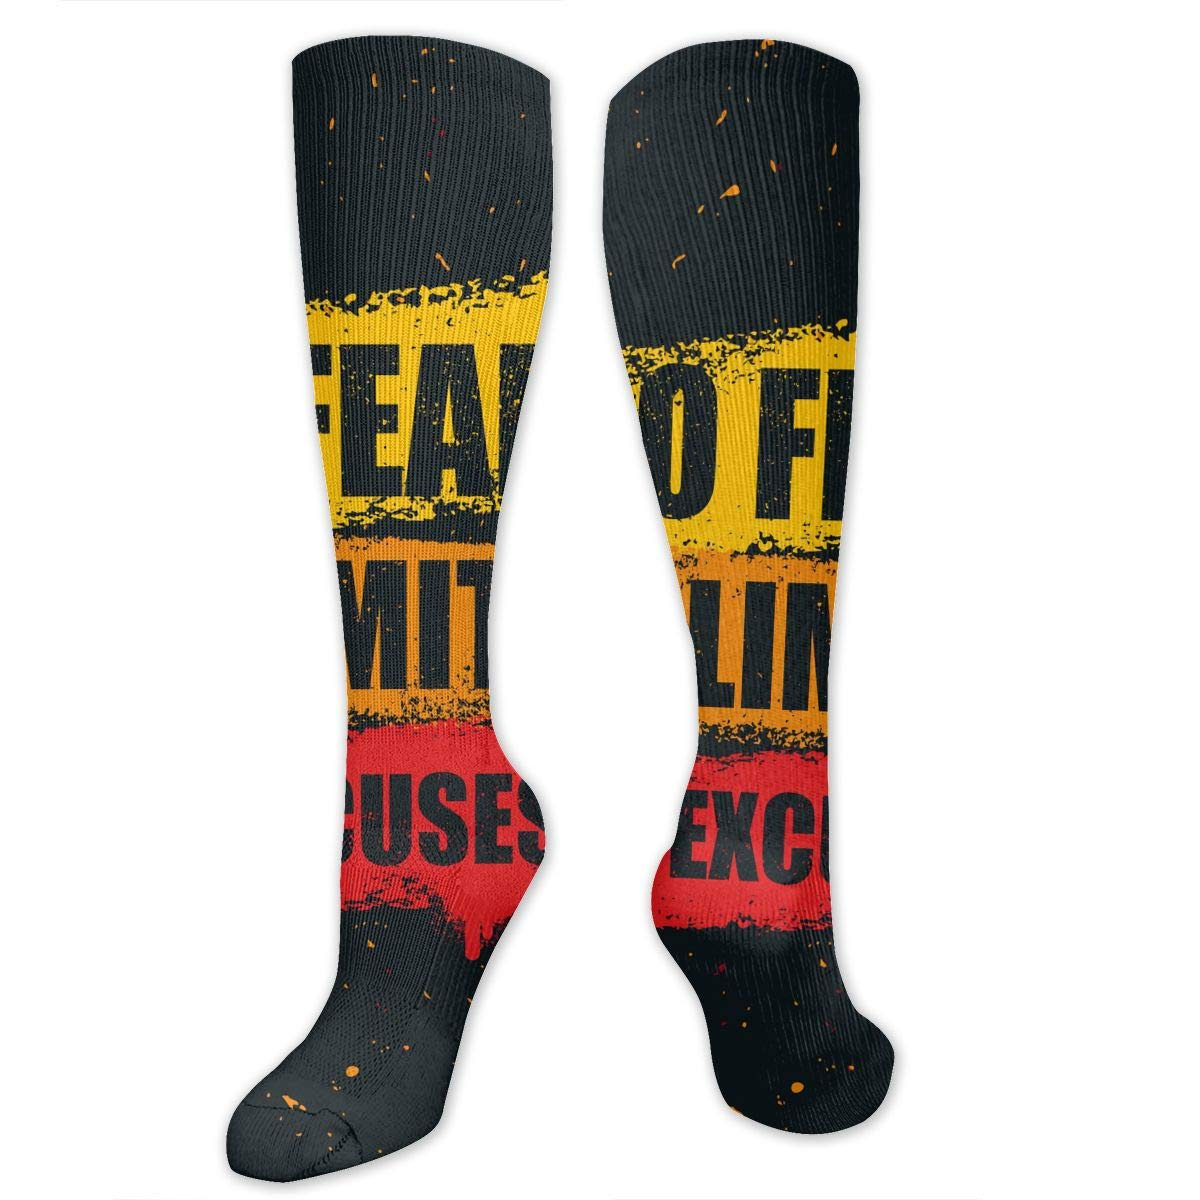 Football Long Stockings No Excuses With Wearable Material For Teenagers Fitness Workouts